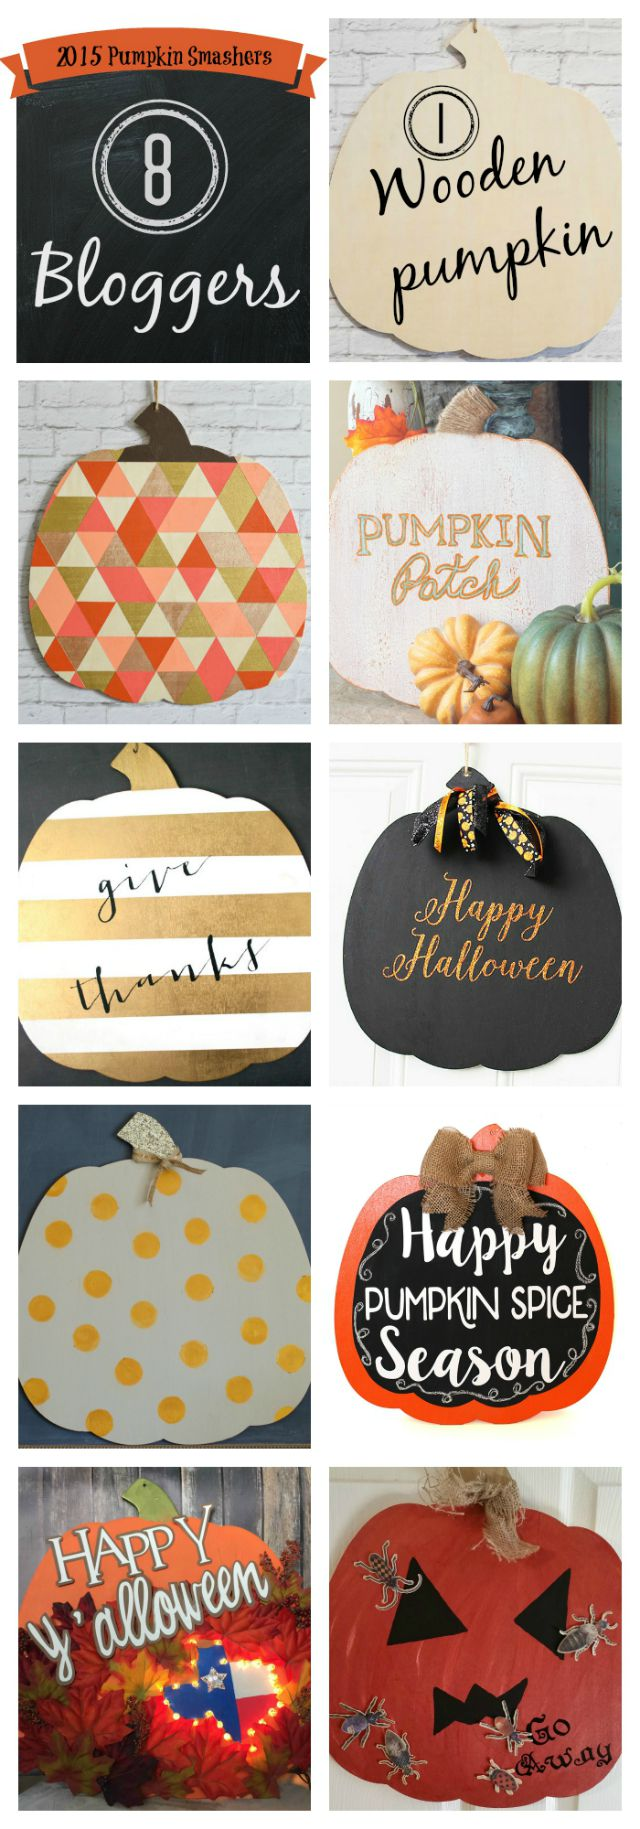 1 Wooden Pumpkin, 8 Different Ideas